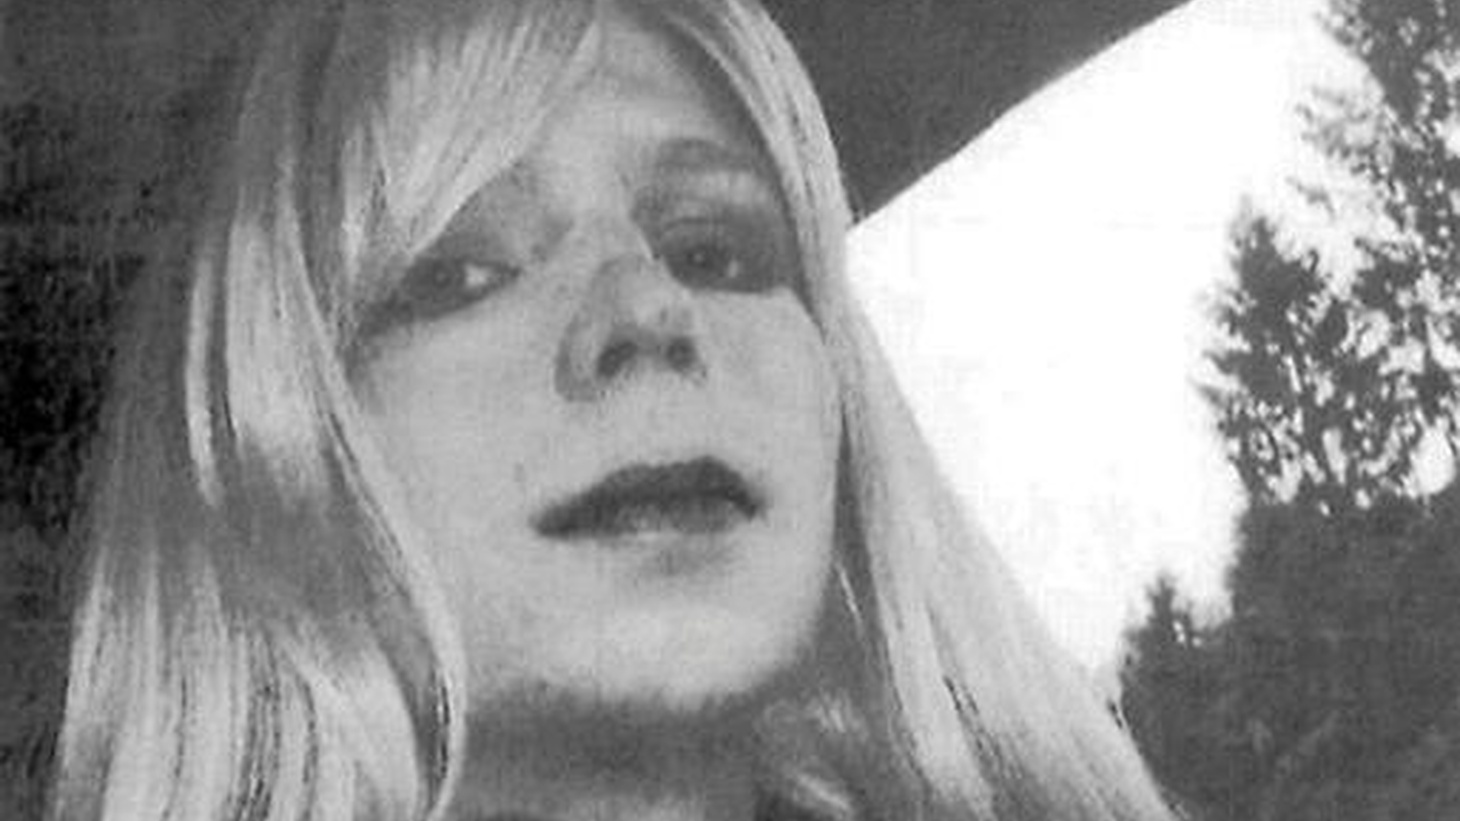 Campaigns for the rights of homosexuals have left out the rights of transgender people. Now that Bradley Manning is Chelsea Manning, will that make a difference?